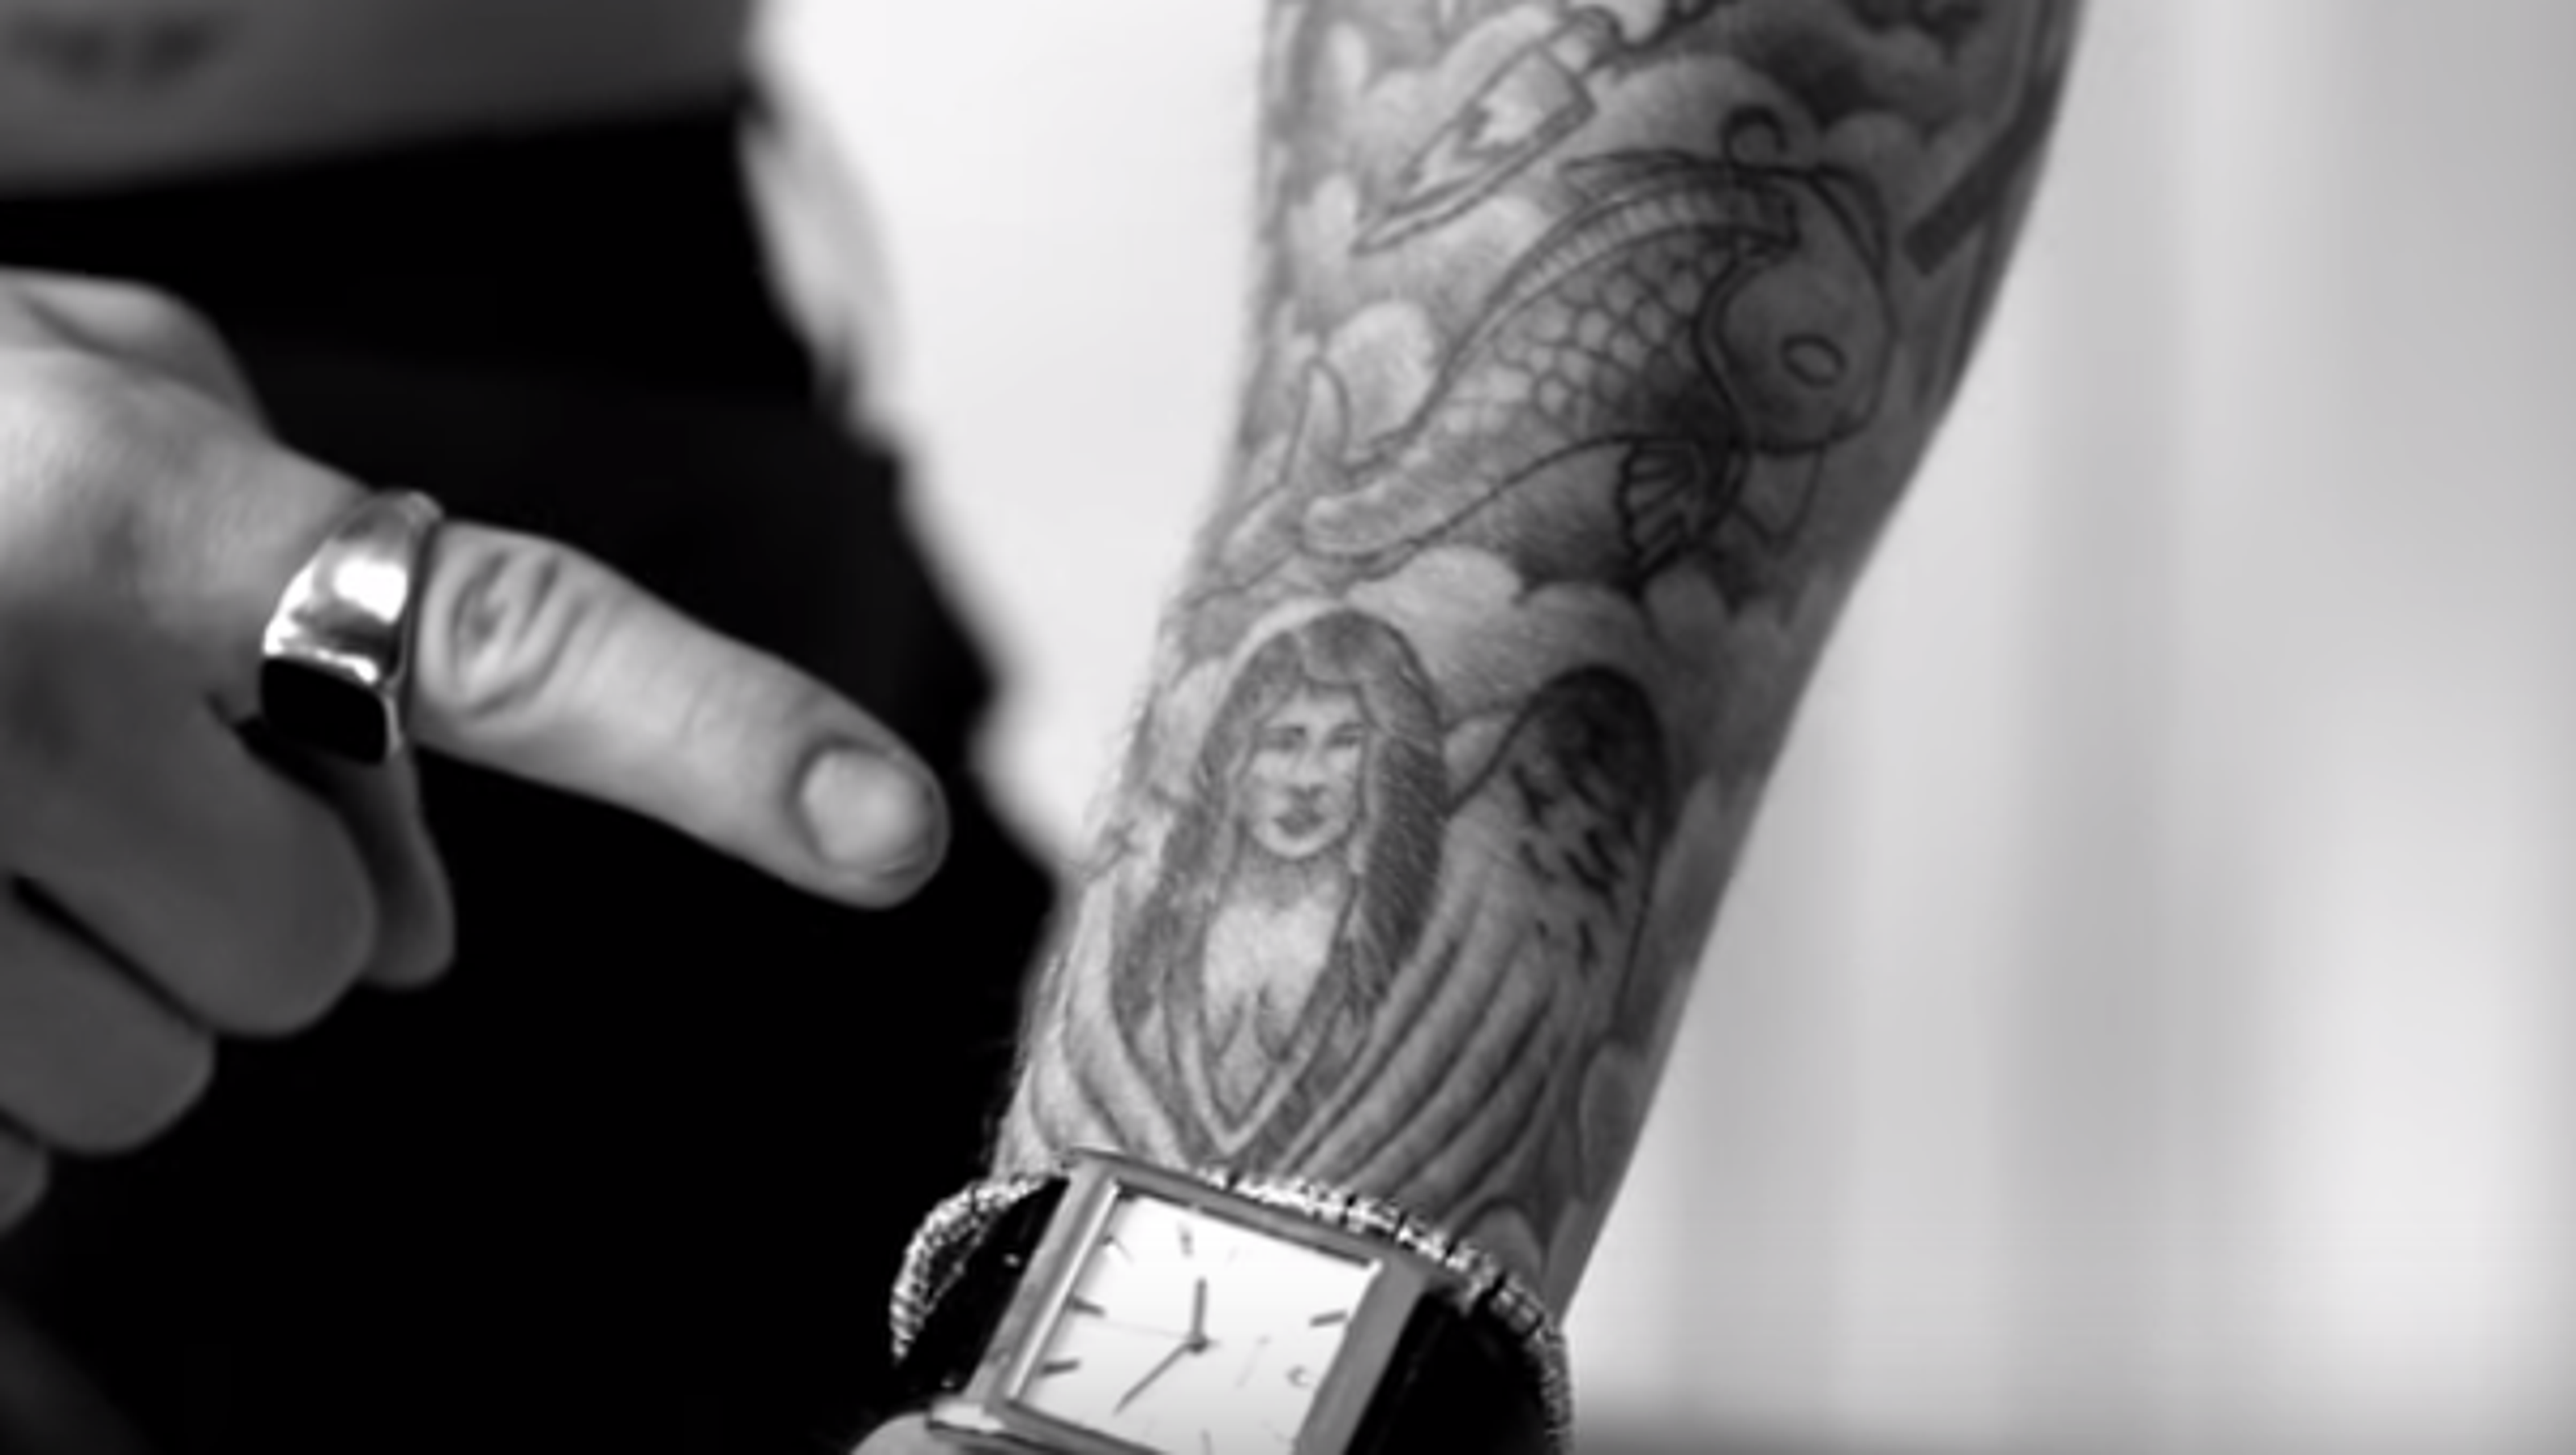 Justin Bieber Tried And Failed To Cover Up His Selena Gomez Tattoo